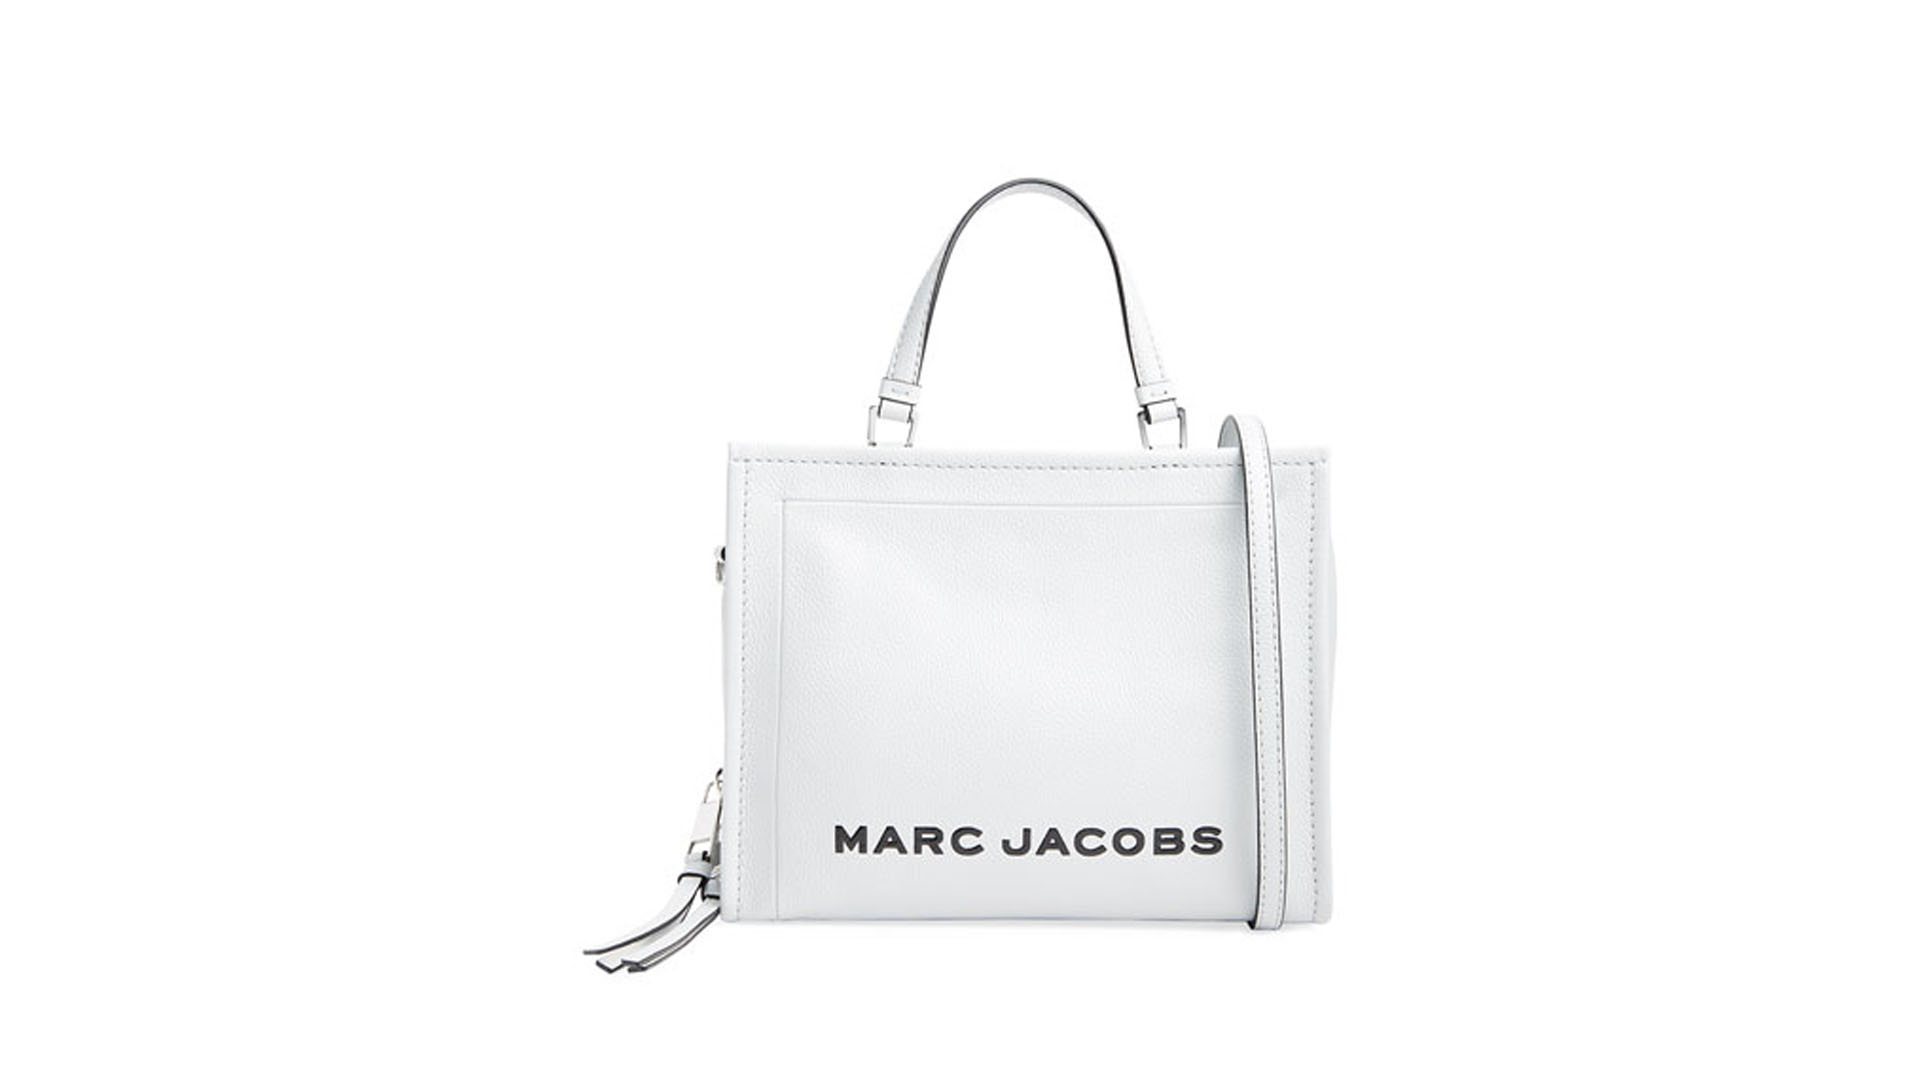 Stylish Summer Outfits | Purchase Marc Jacobs Handbag At Neiman Marcus Through Lemoney